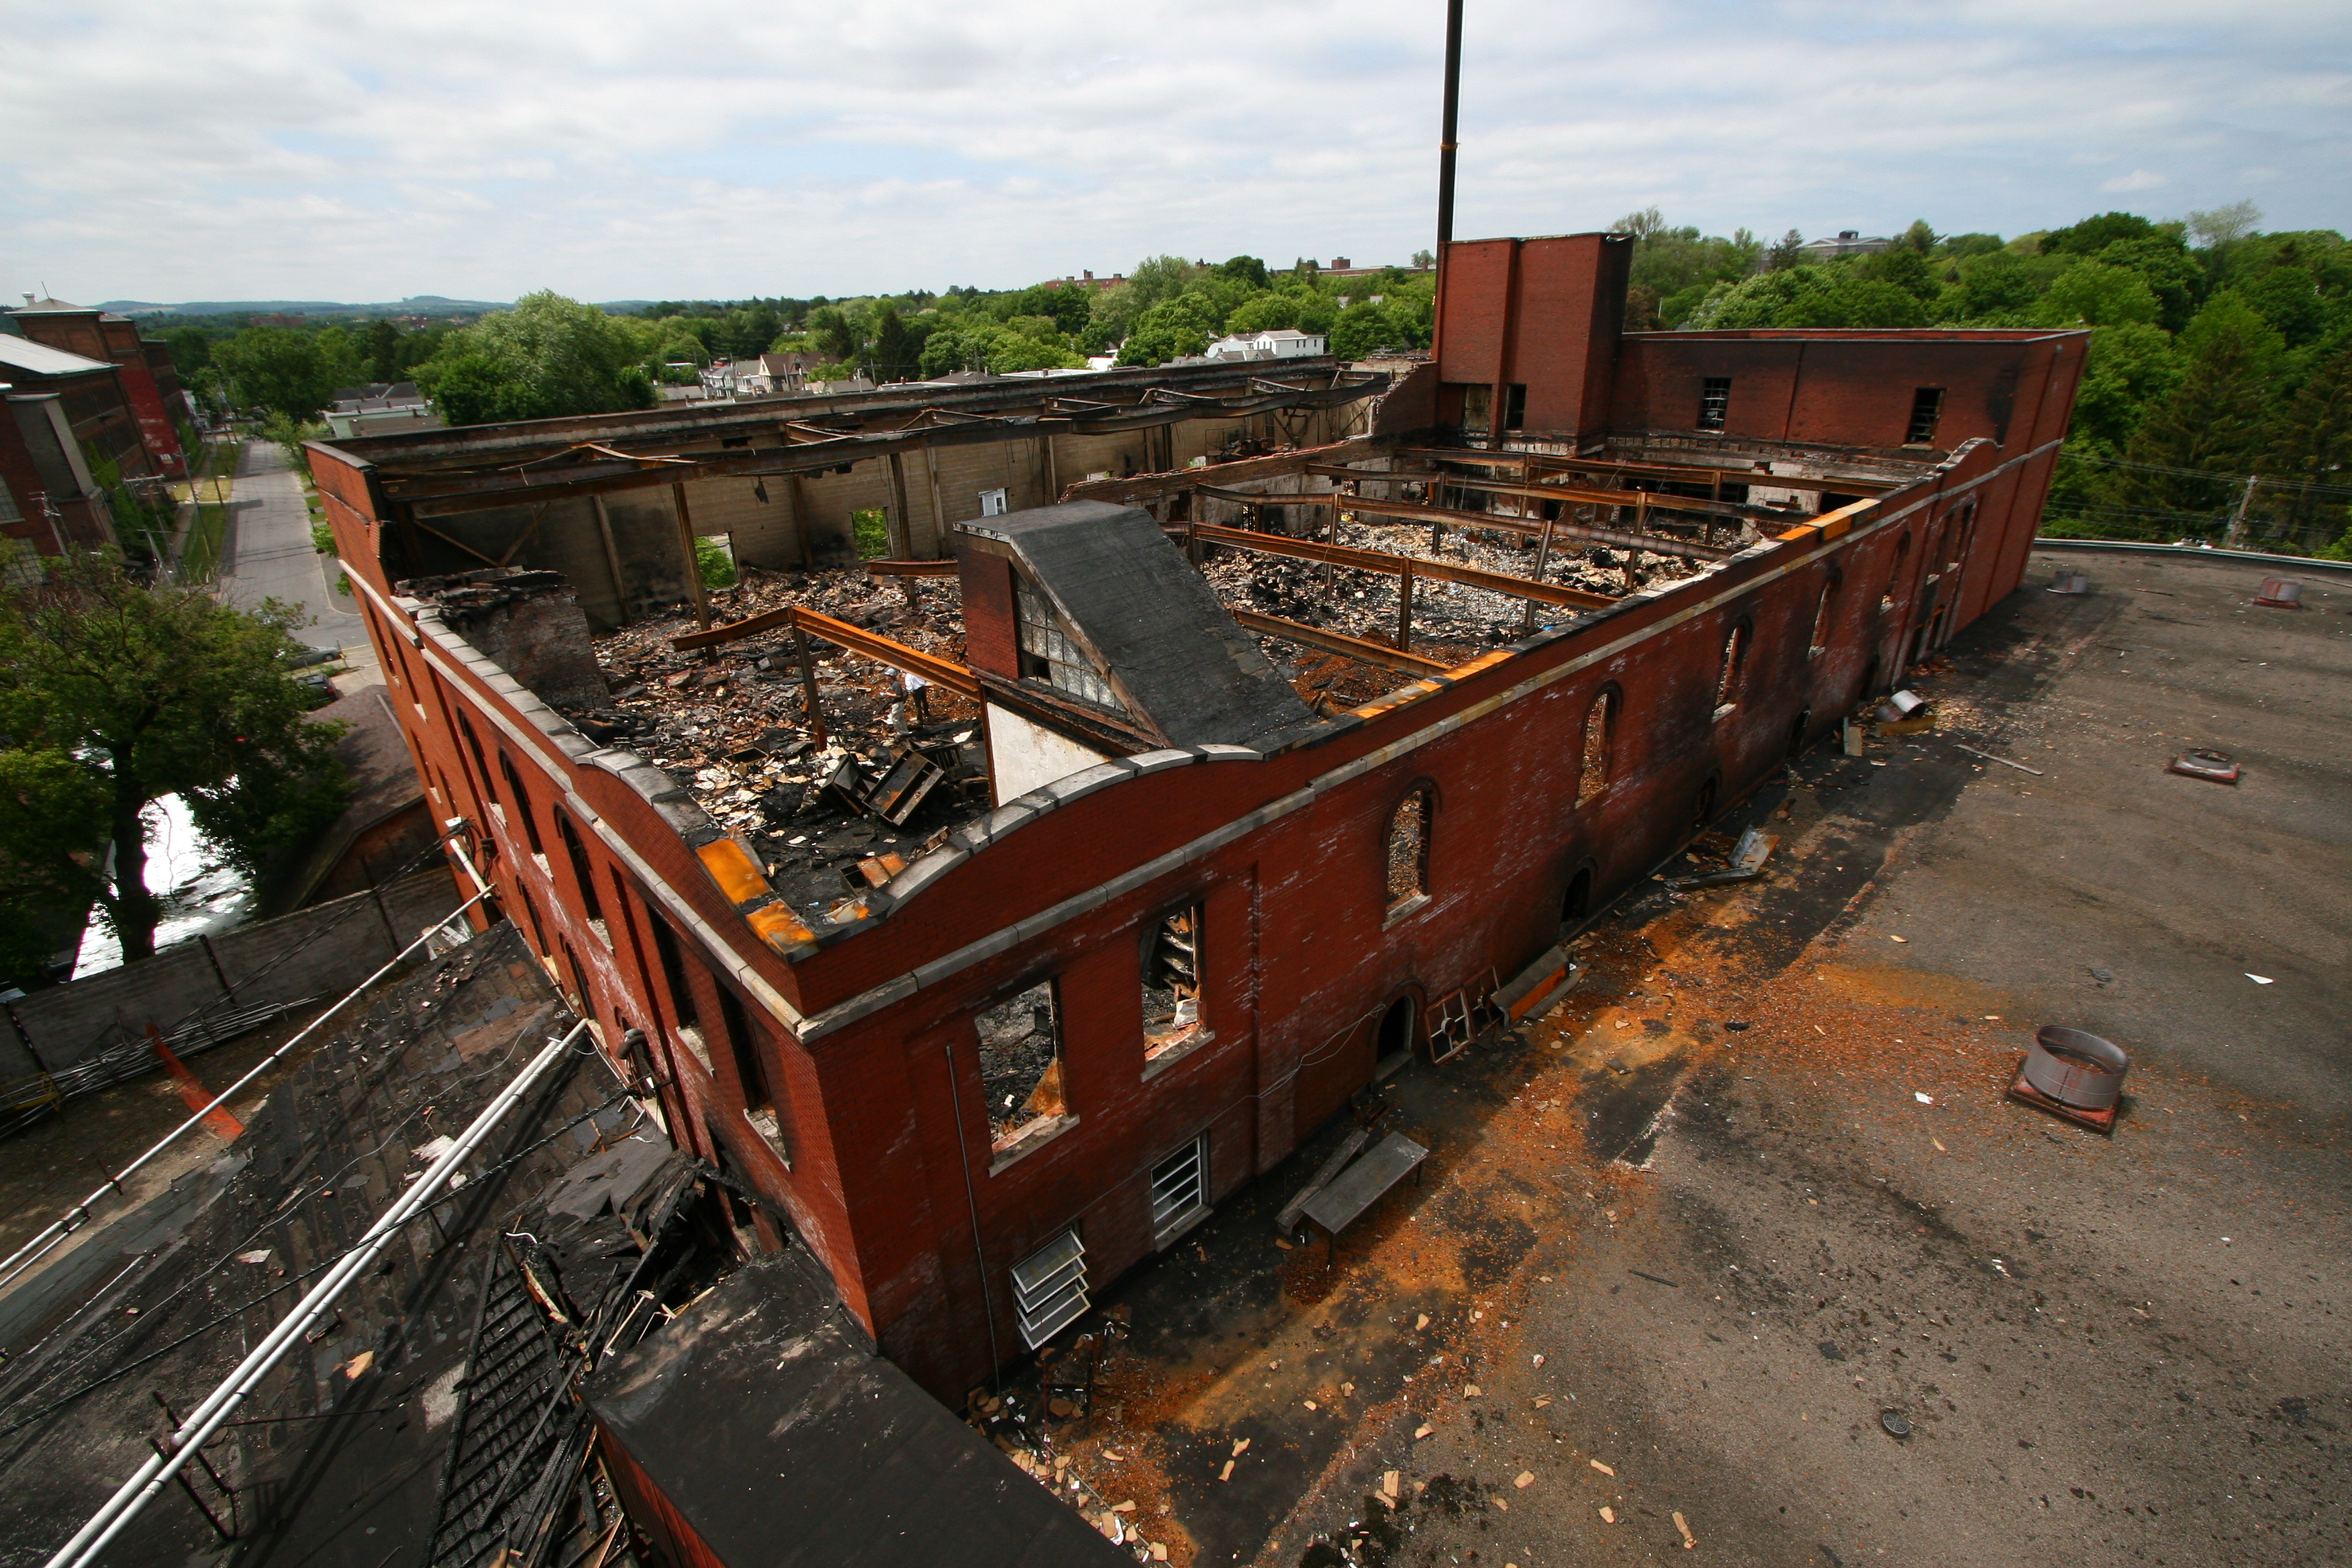 Commercial Property Business Fire Damage Goodman-Gable-Gould/Adjusters International